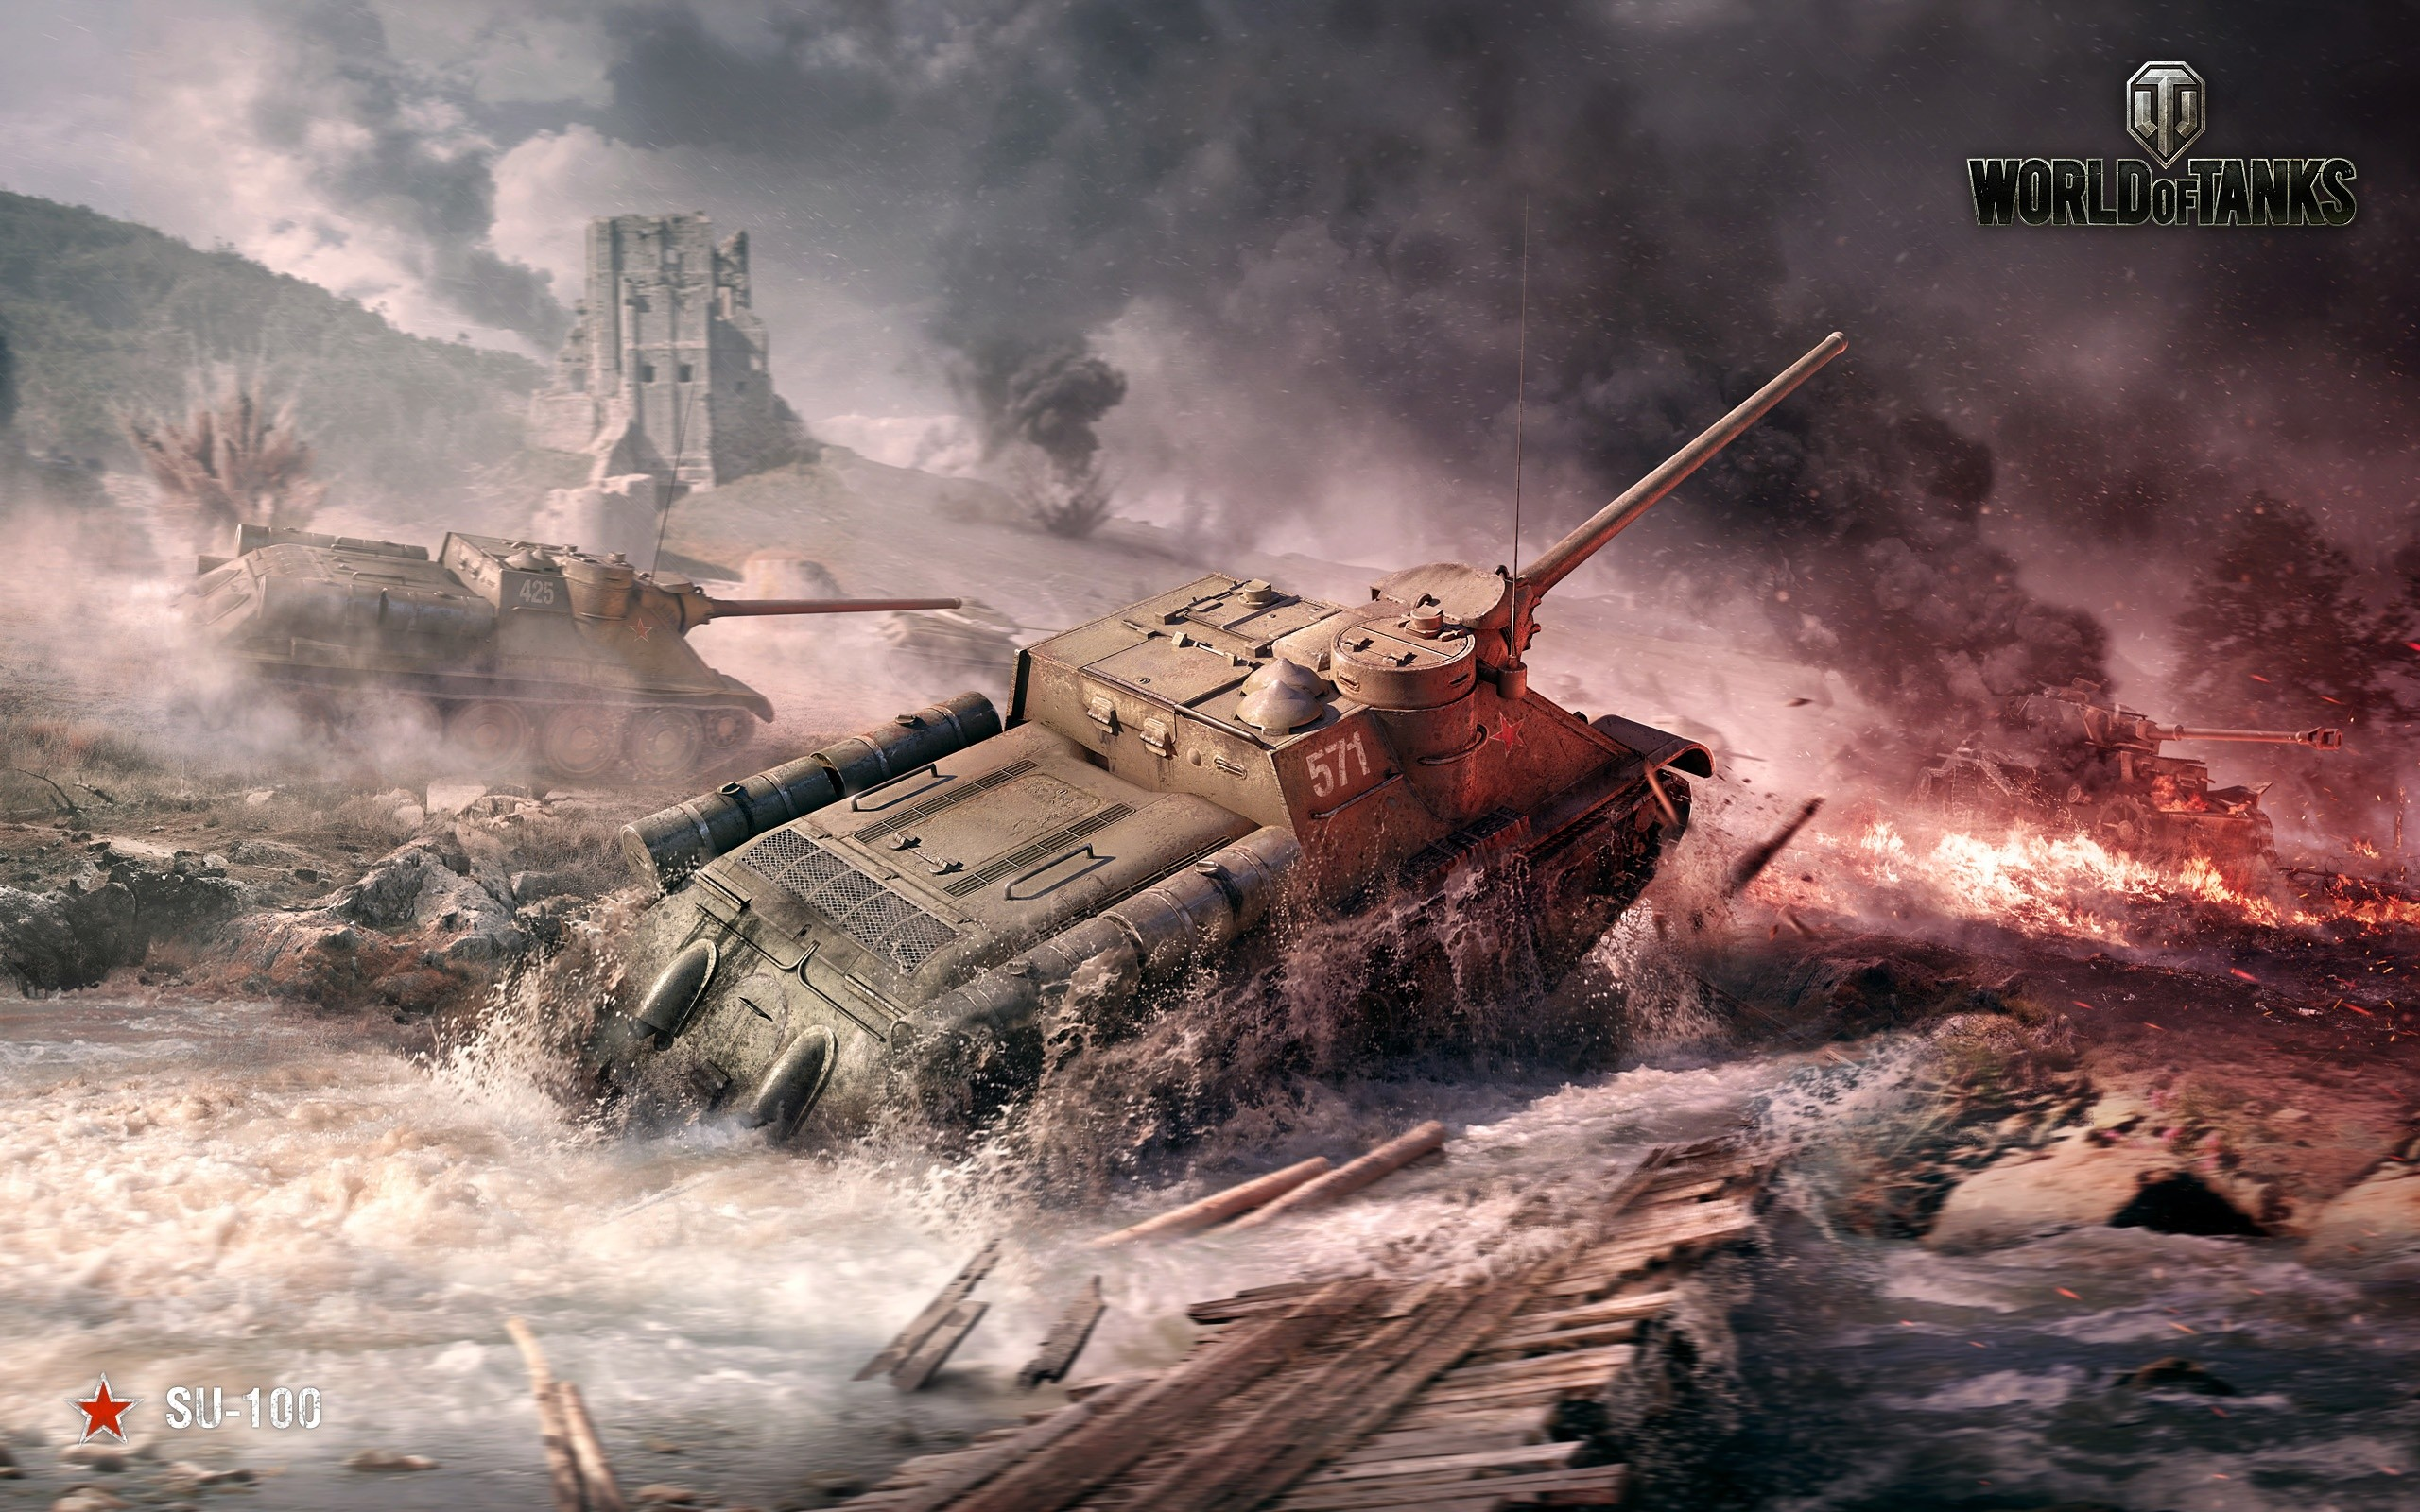 Res: 2560x1600, World Of Tanks Wallpapers Full Hd · Ww2 ...